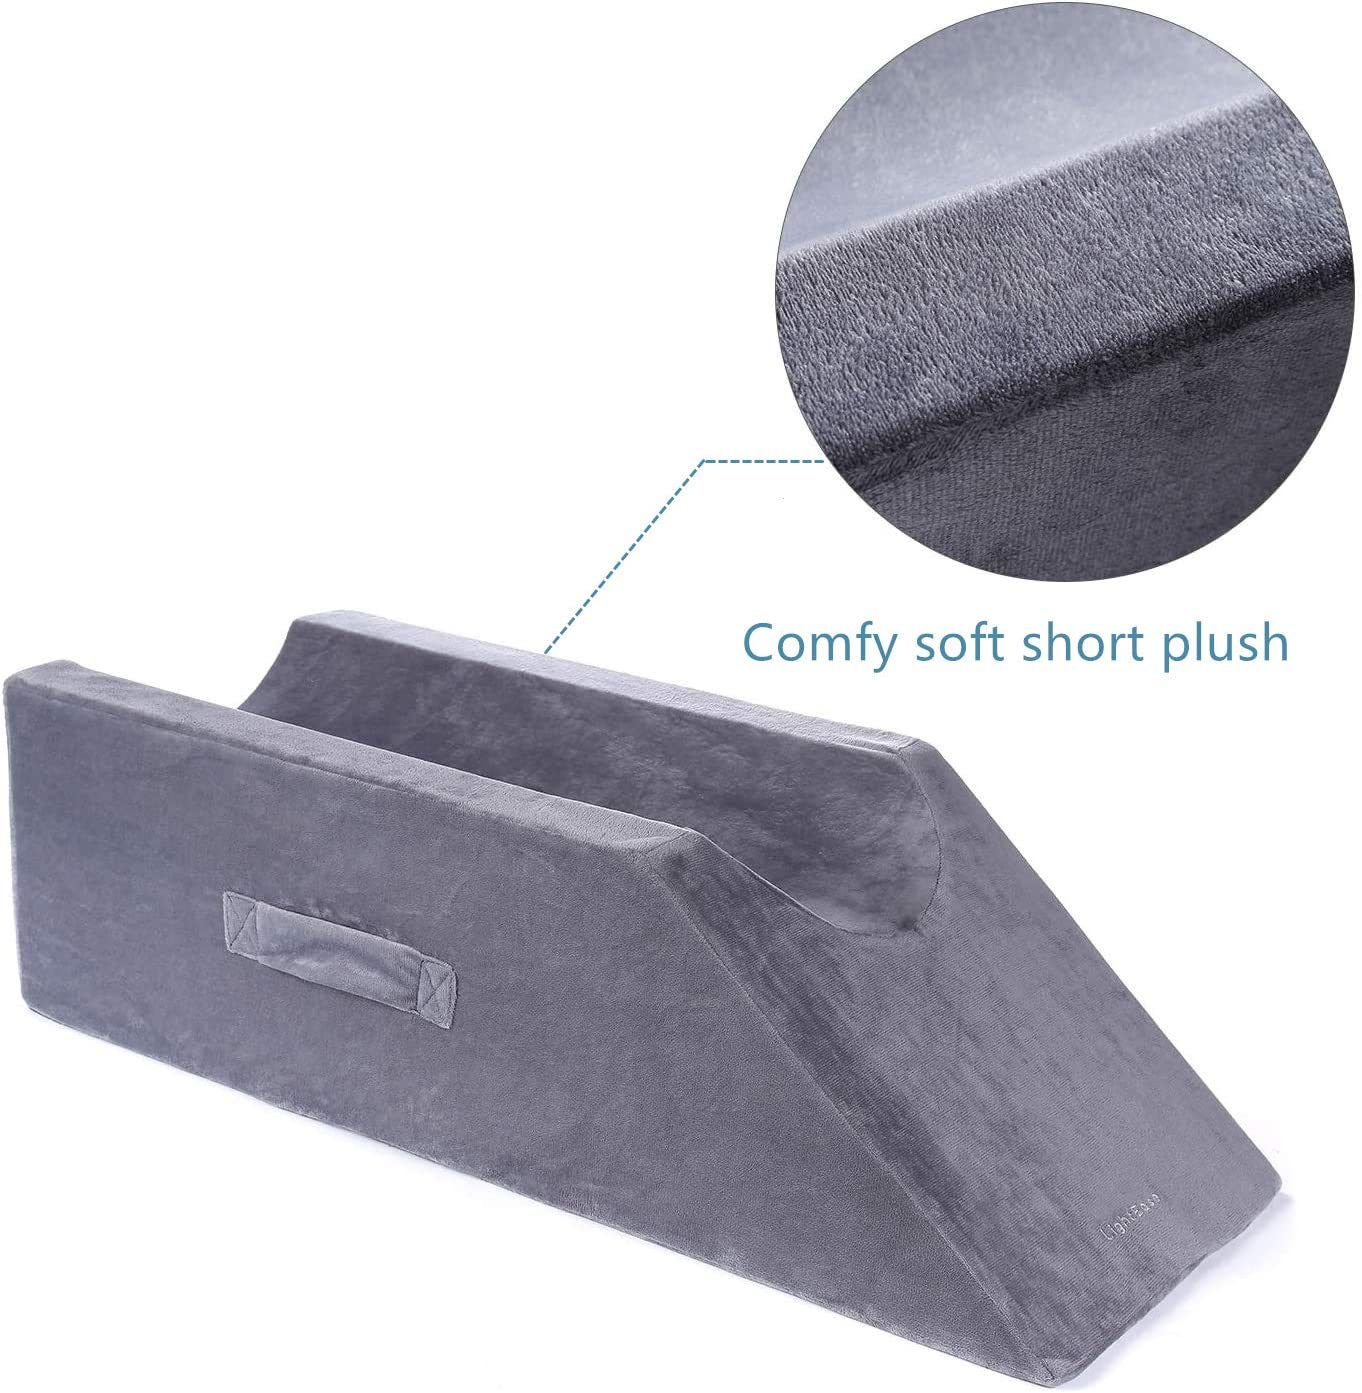 LightEase Memory Foam Leg, Knee, Ankle Support and Elevation Leg Pillow for Surgery: Home & Kitchen